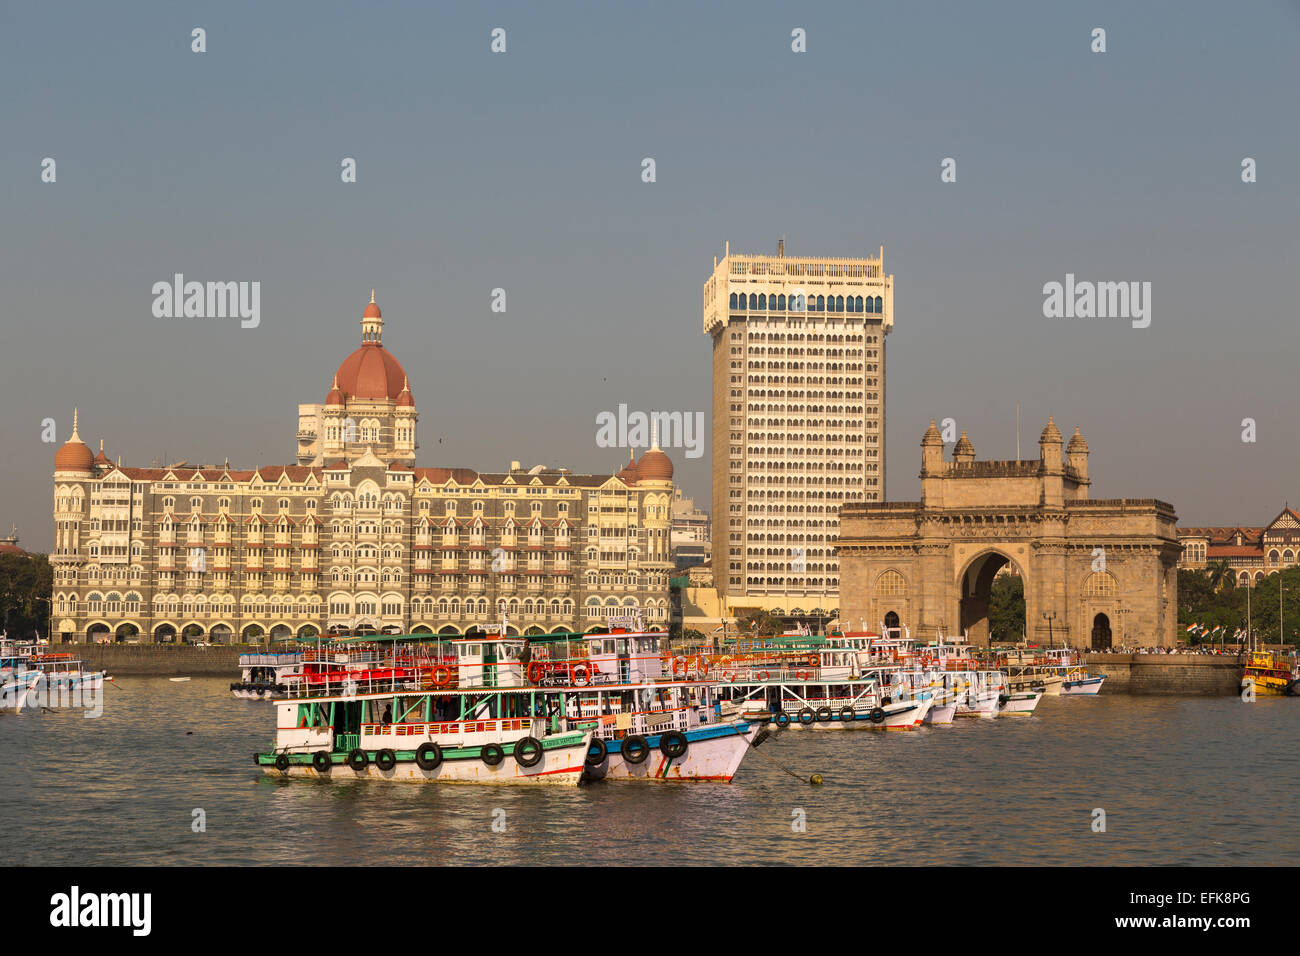 India Maharashtra, Mumbai, Colaba distretto, Gateway of India e il Taj Hotel in Early Morning Light Immagini Stock